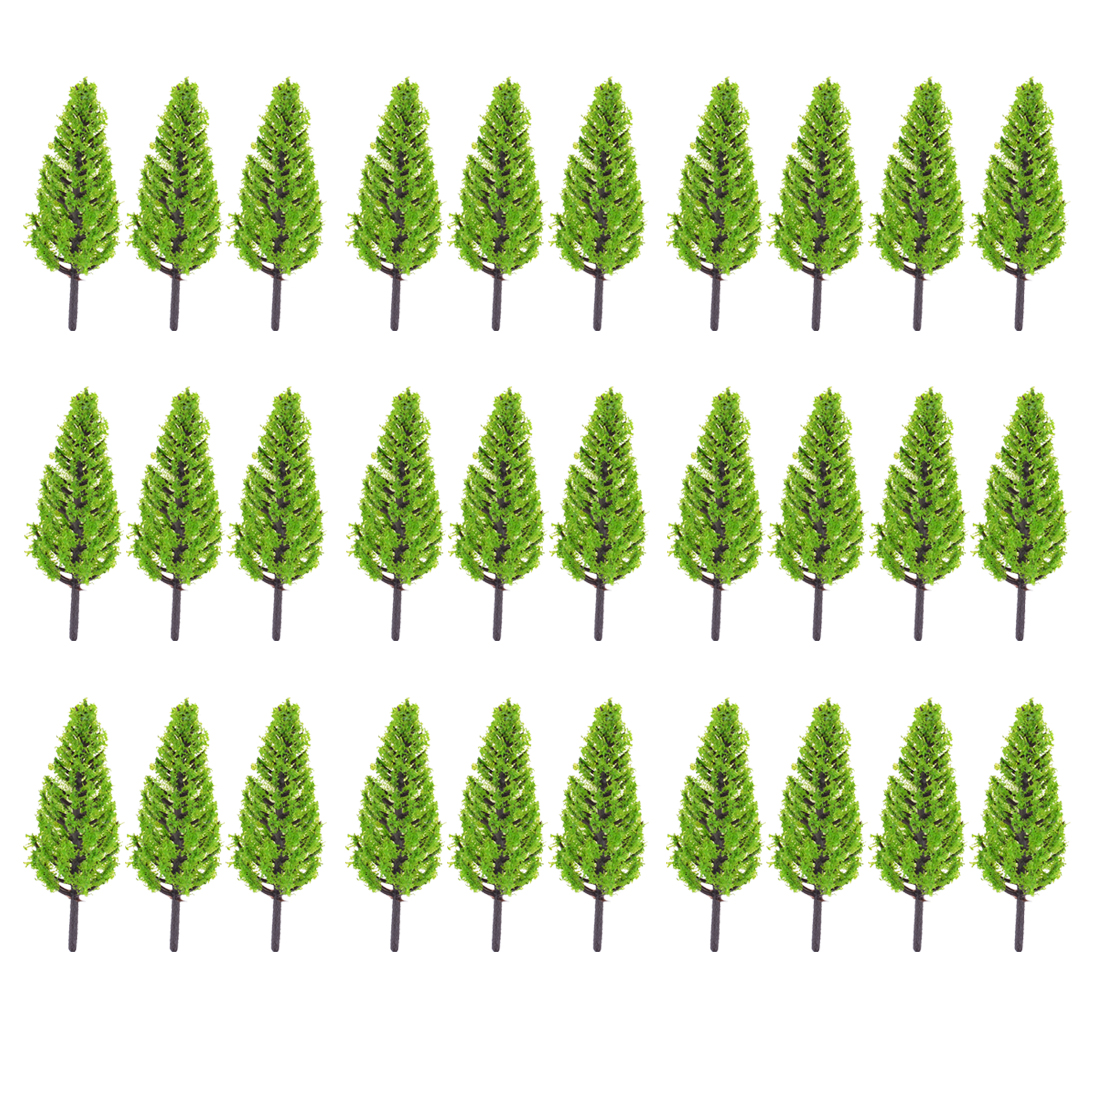 30 Pcs Light Green Plastic Pagoda Model Trees Layout Scene 7.5cm High Scale 1:200